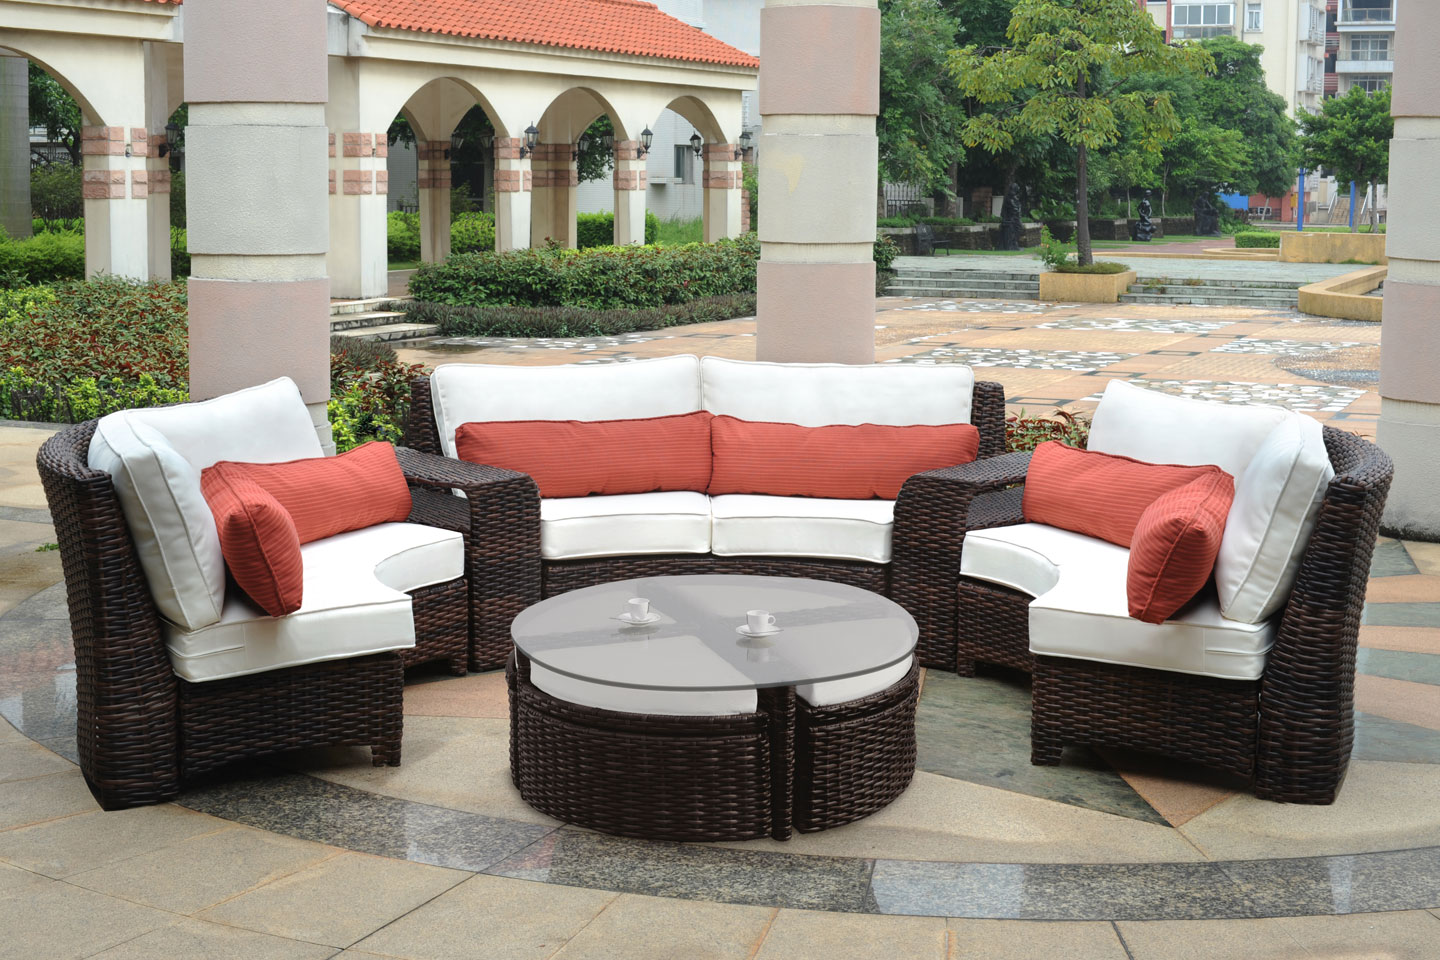 Patio Seating gt Fiji Curved Outdoor Resin Wicker Round Sectional